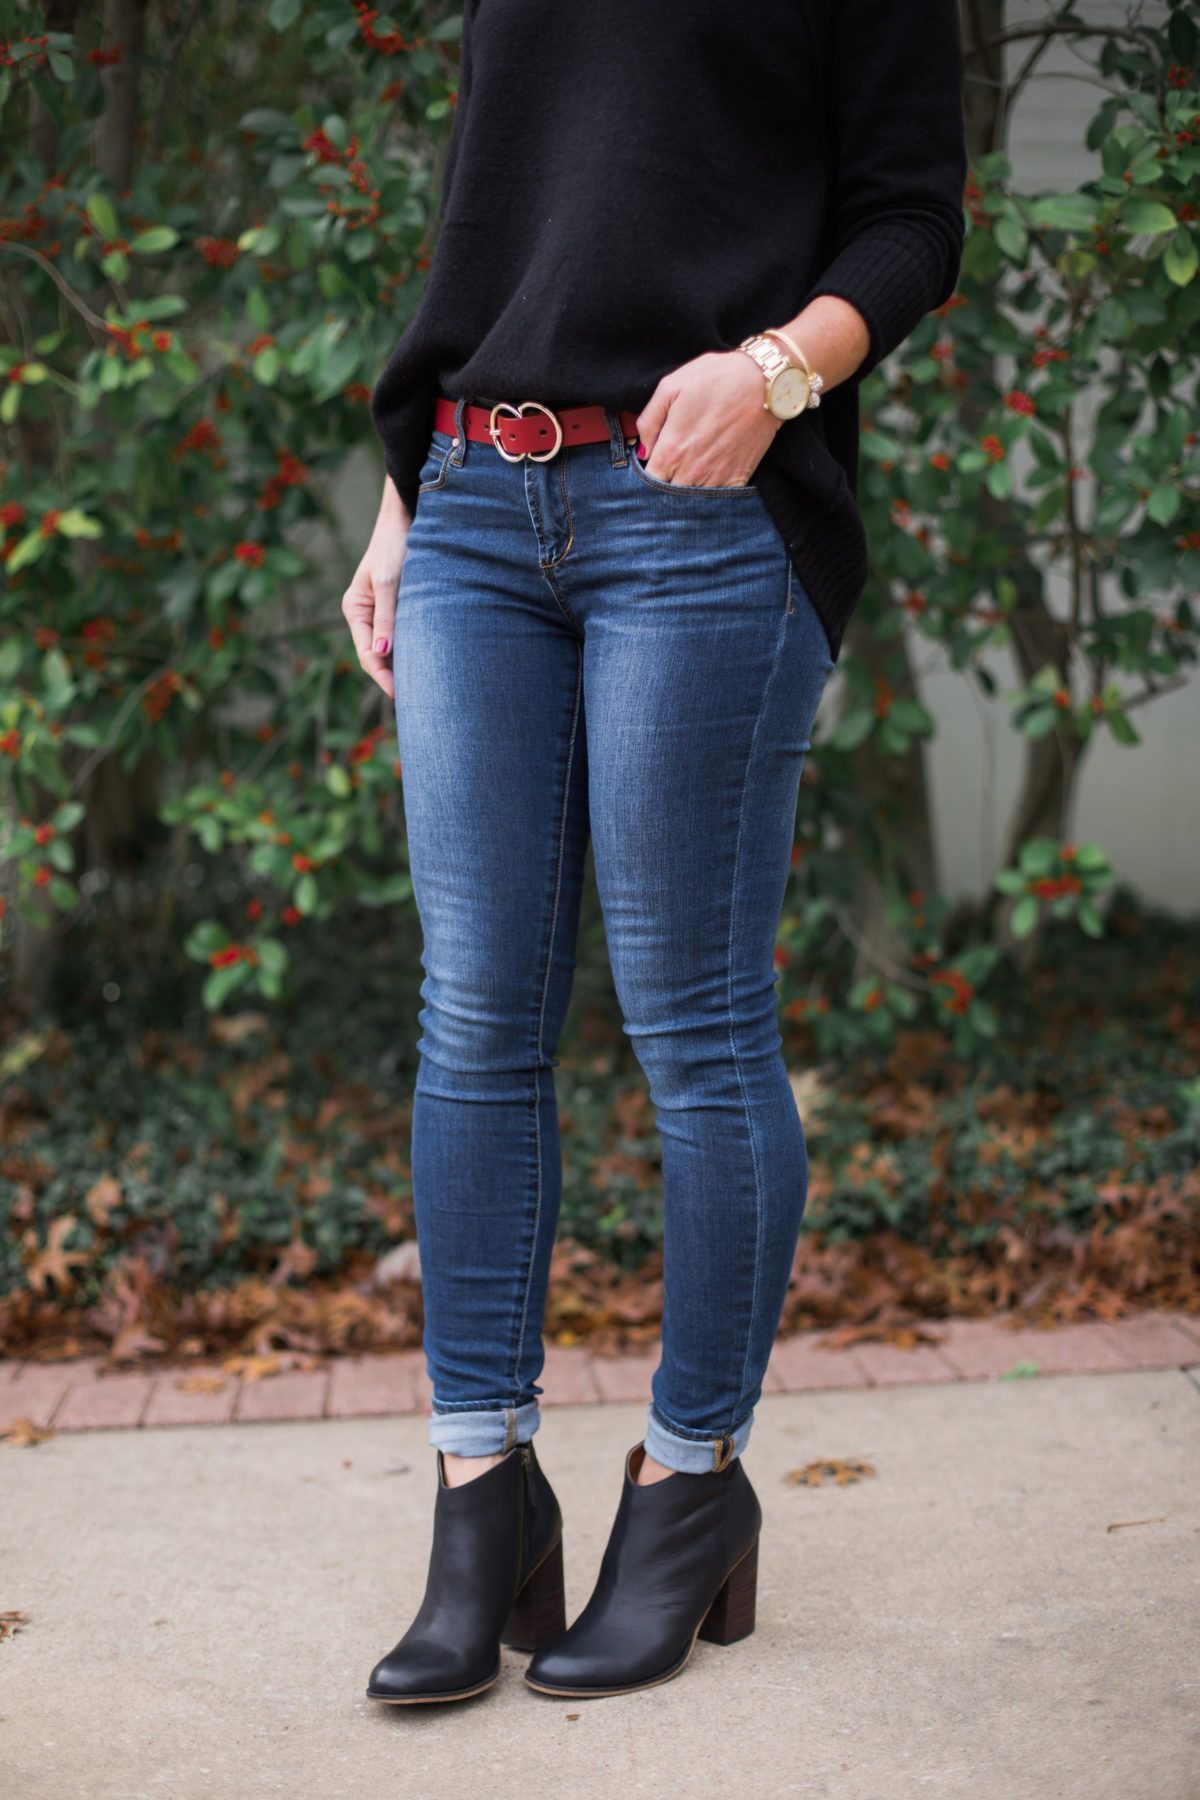 Sugarplum Style Tip How To Wear Ankle Boots With Skinny Jeans Hi Sugarplum Casual Outfits Ankle Boots With Jeans Winter Skinny Jeans Outfits